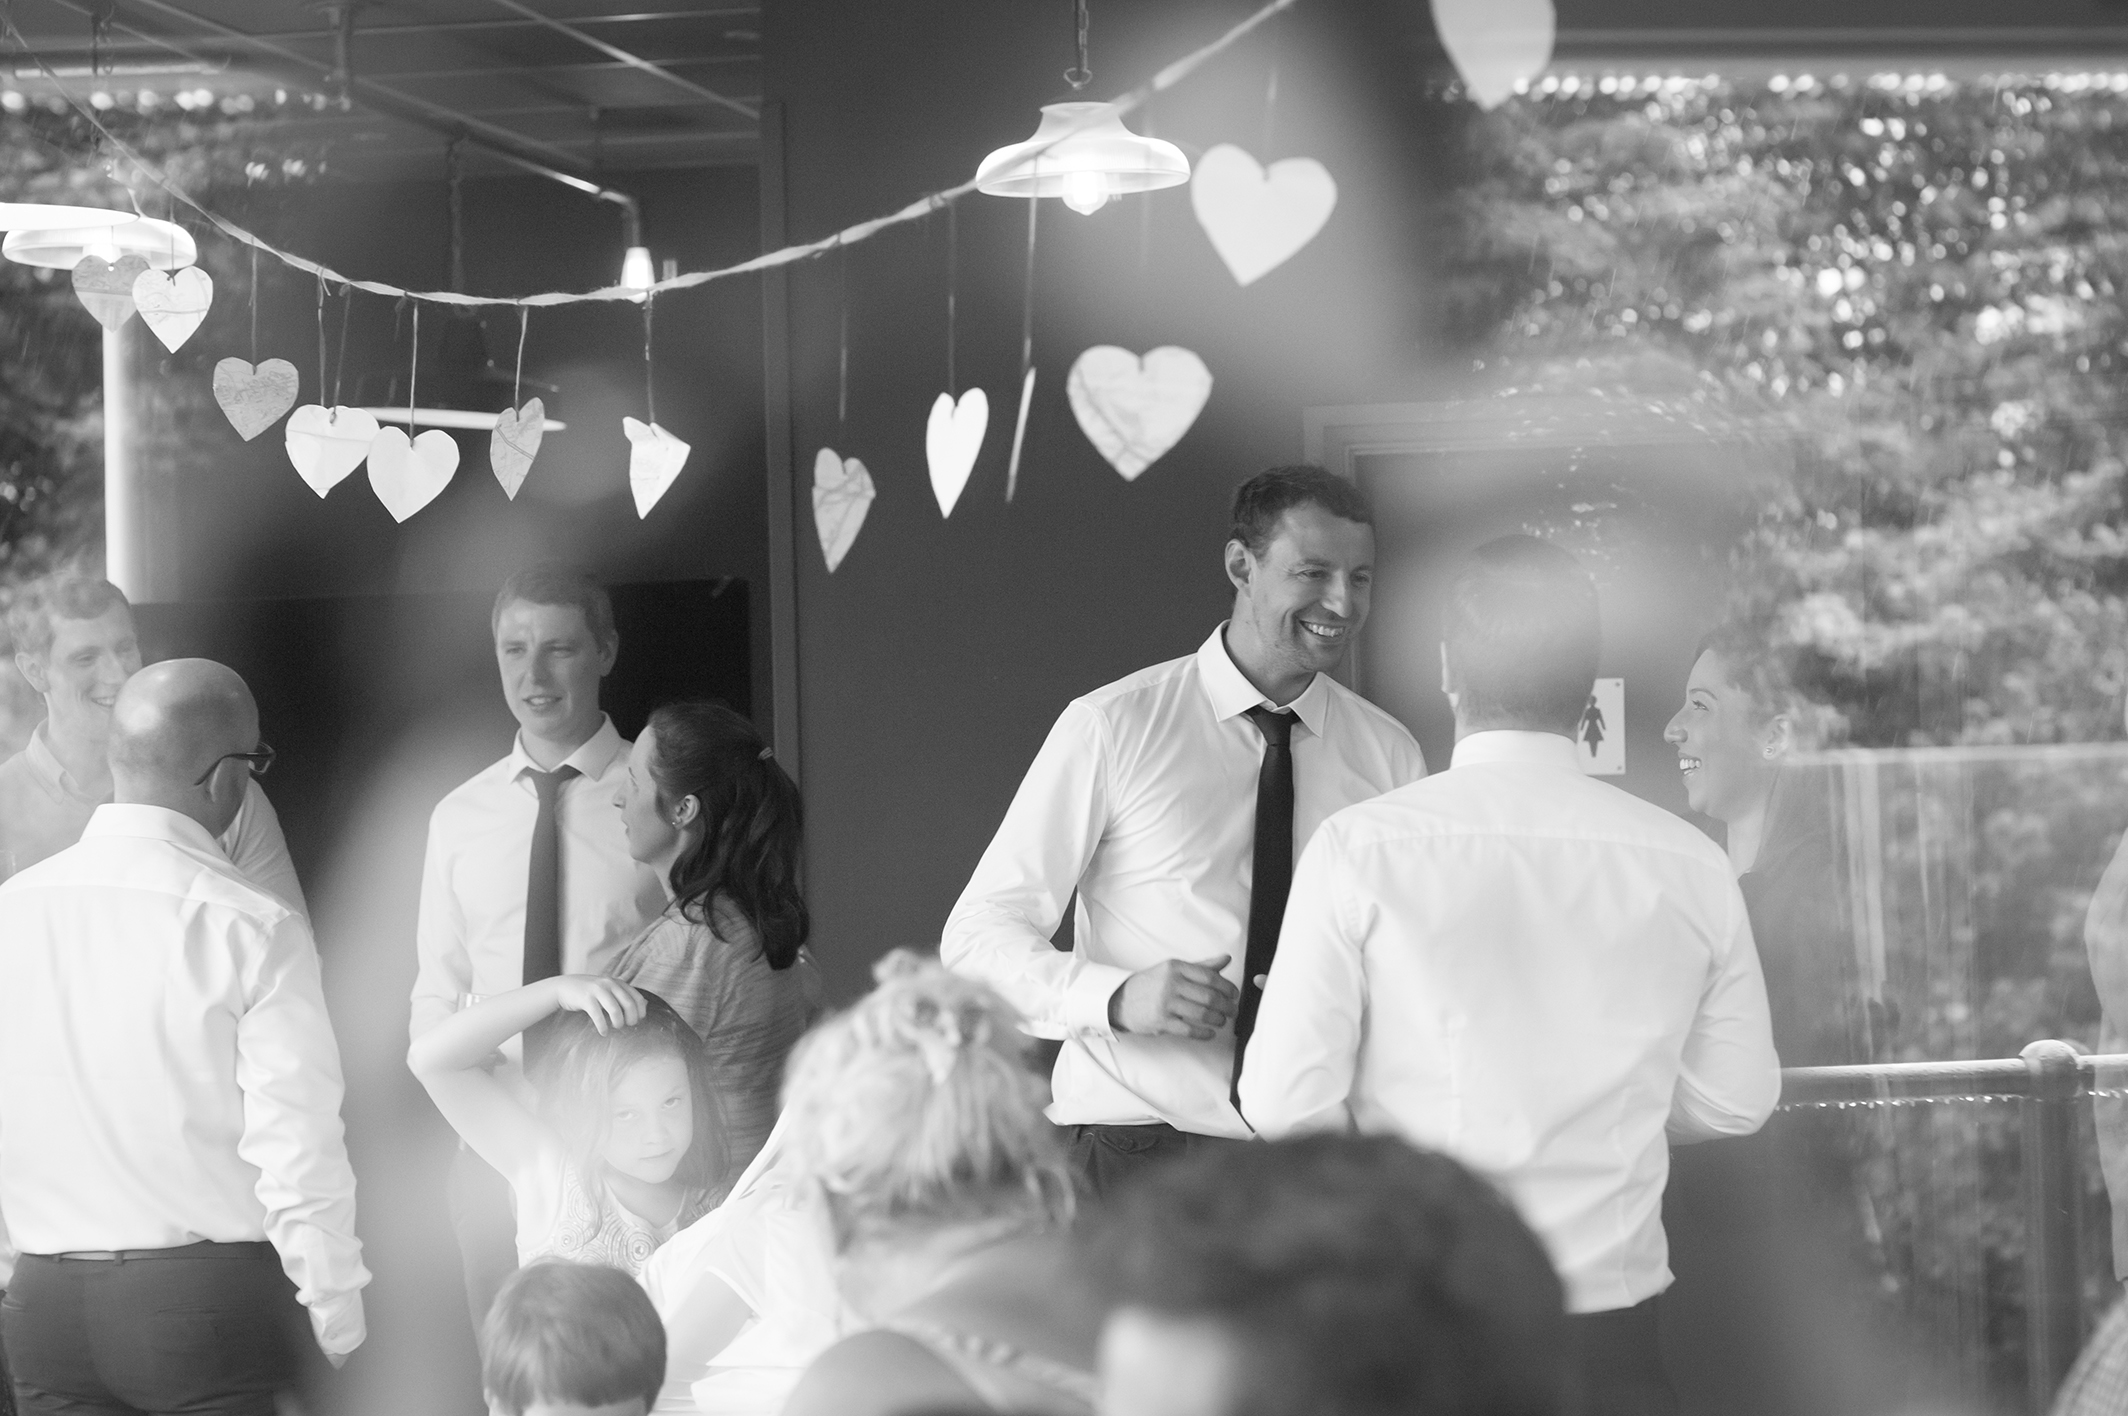 Portrait of wedding reception by wedding photographers at Ripe Photography in Leeds, England.